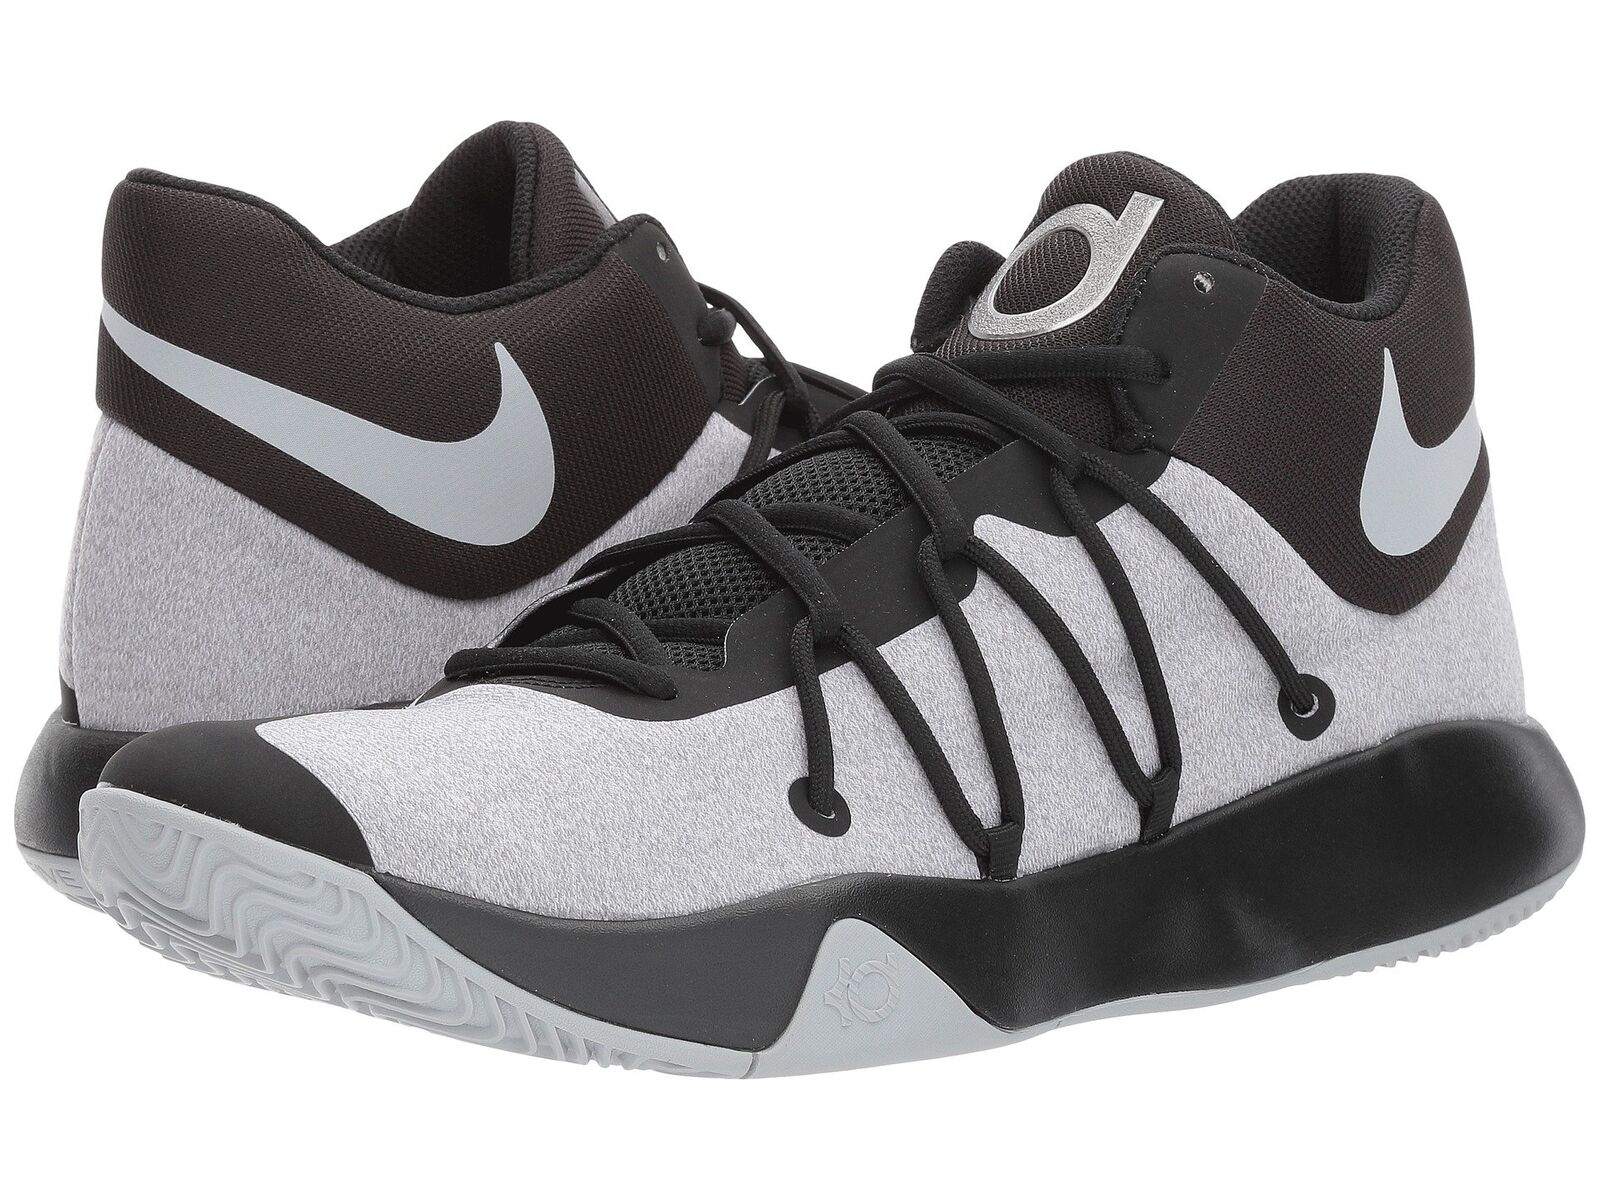 Nike Men's Kd Trey 5 V Basketball shoes Wolf Grey 13 M US